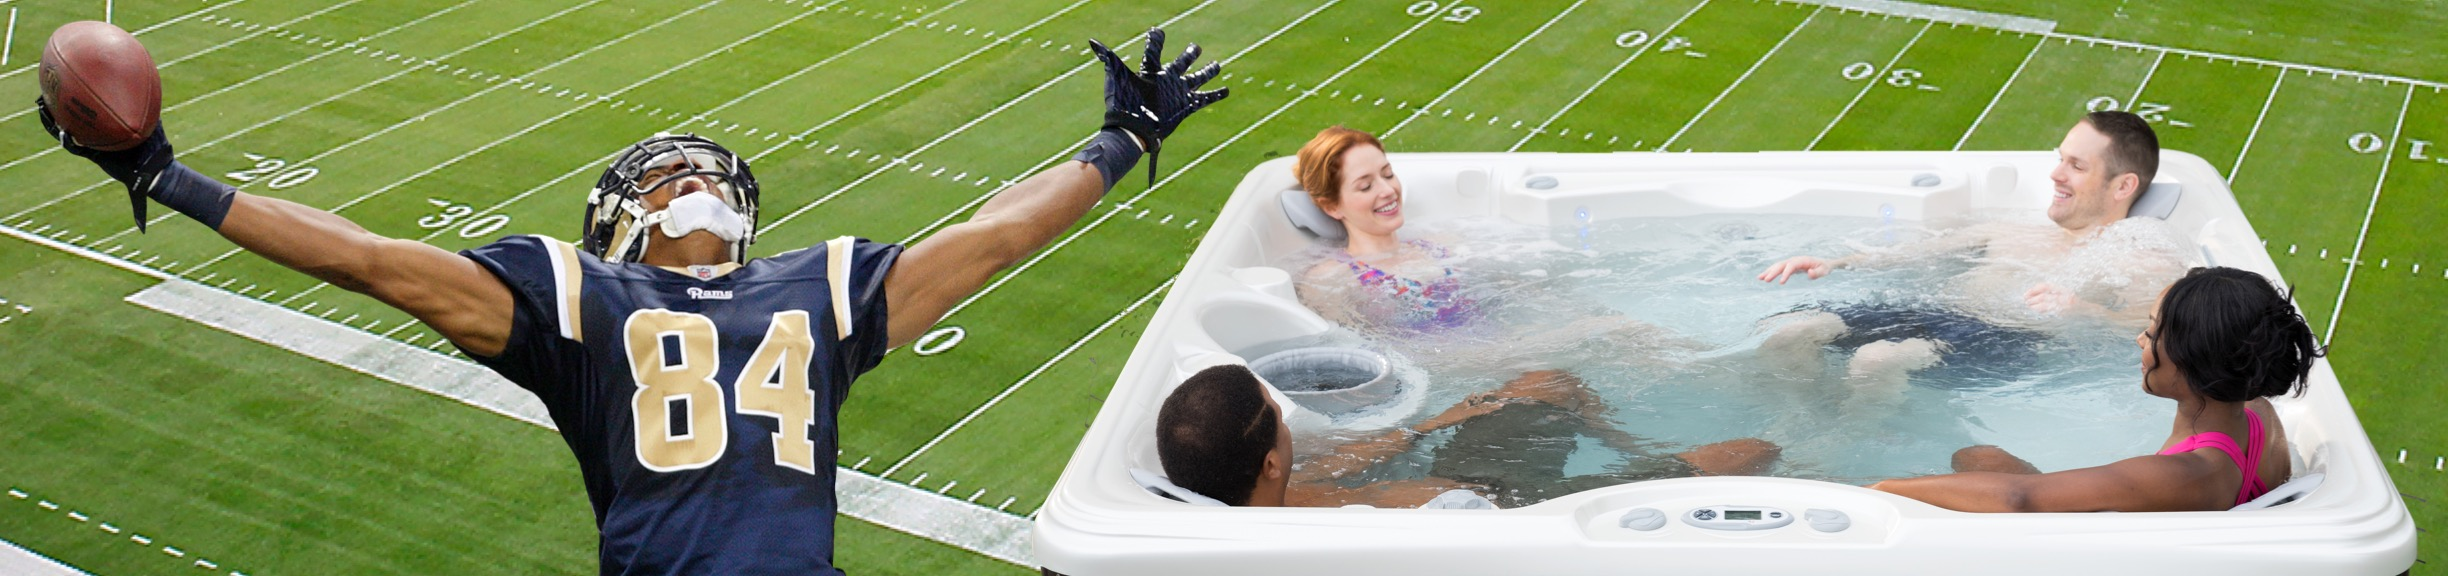 Hot Tub Super Bowl Party Time!